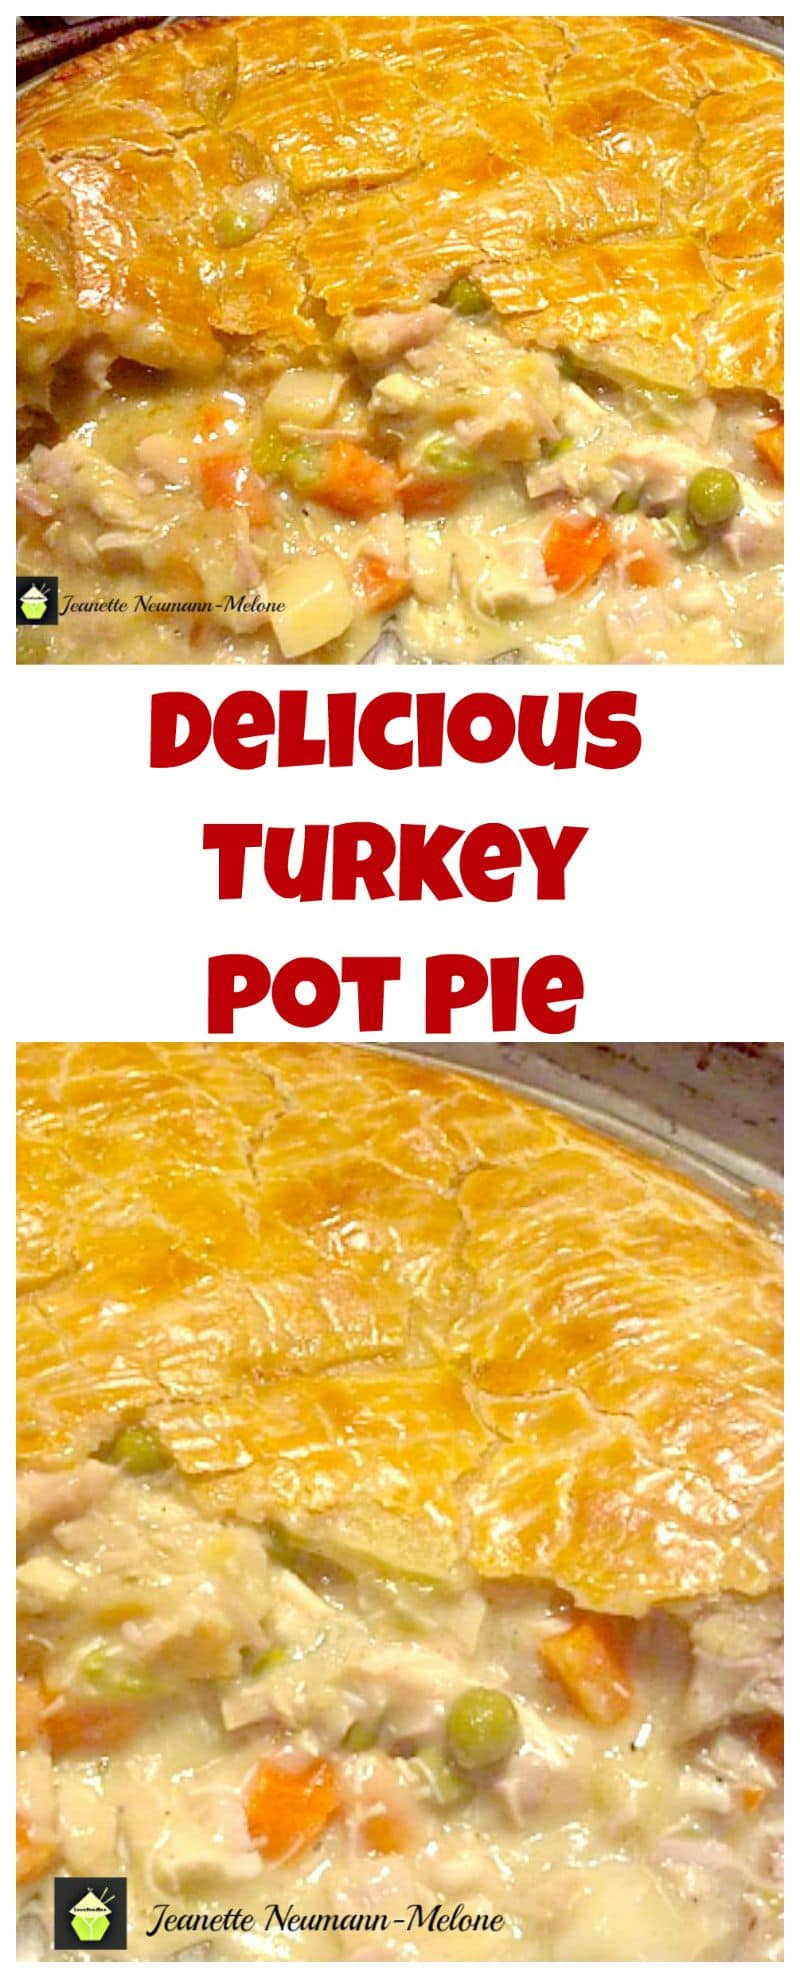 DELICIOUS Turkey Pot Pie, Look at that pie crust! I would also make this using chicken and ham together (great combo!) Oh my!